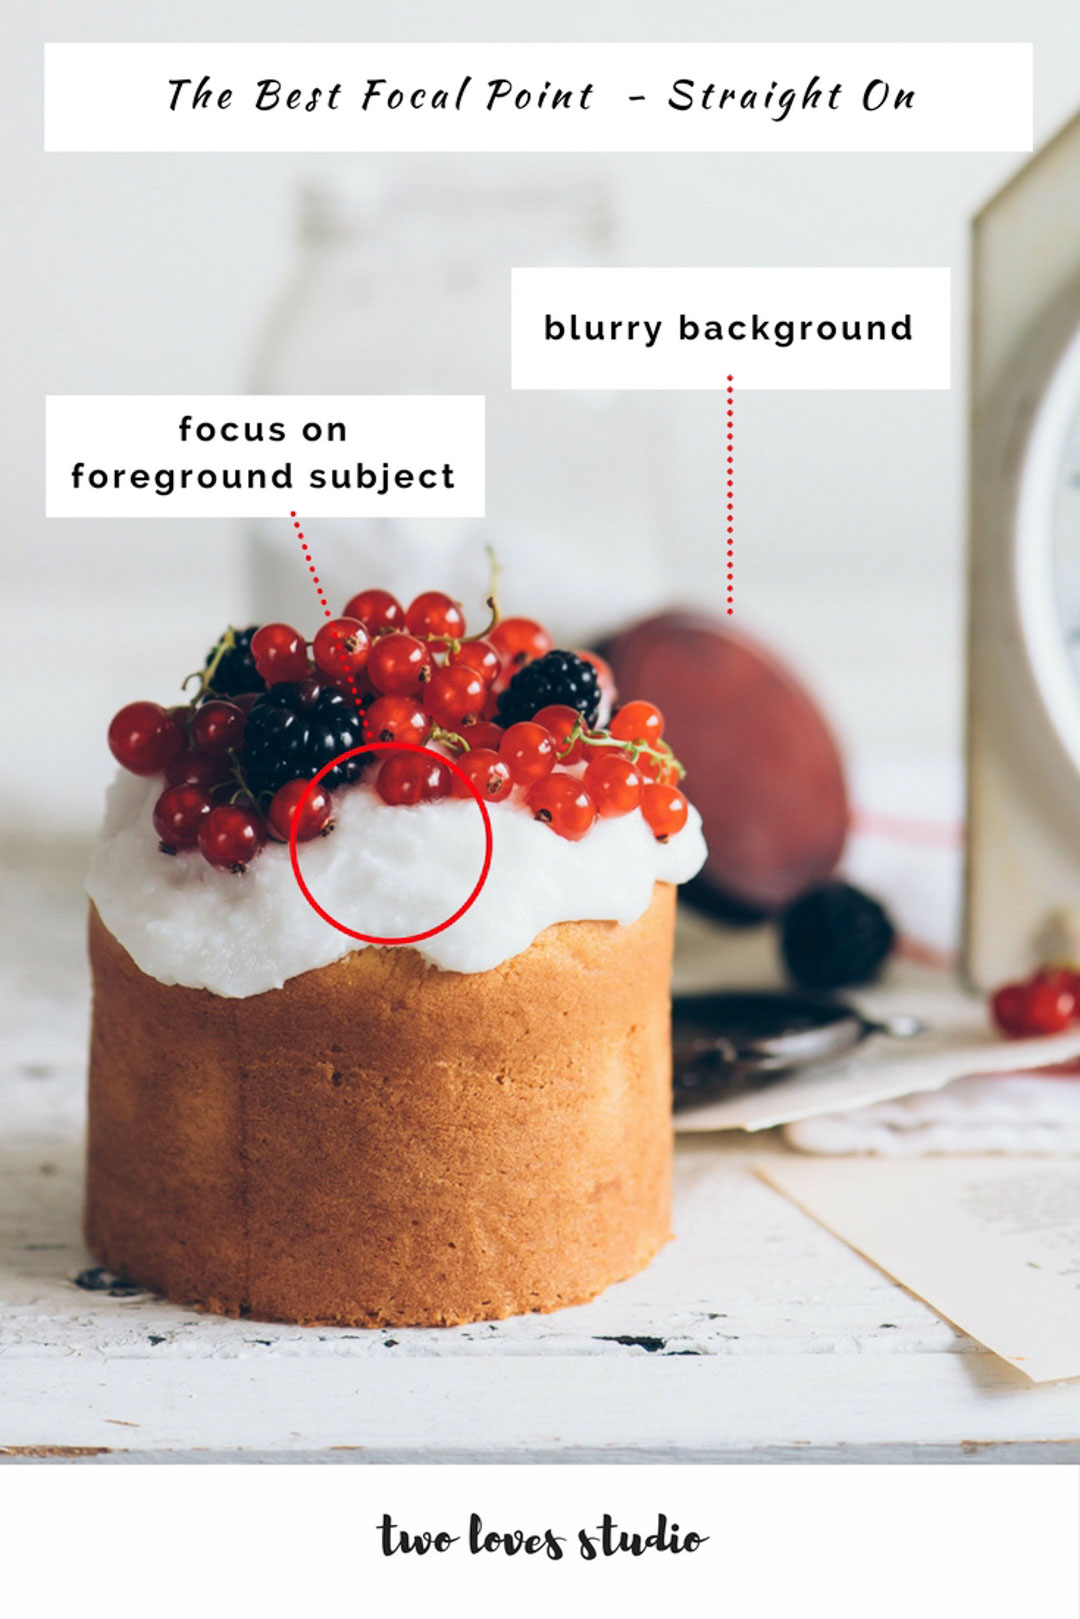 Not sure how to choose the best focal point in your food photography? Learn the best focal point for the angle you're shooting and when to focus on the foreground, middleground and background. Click to learn!